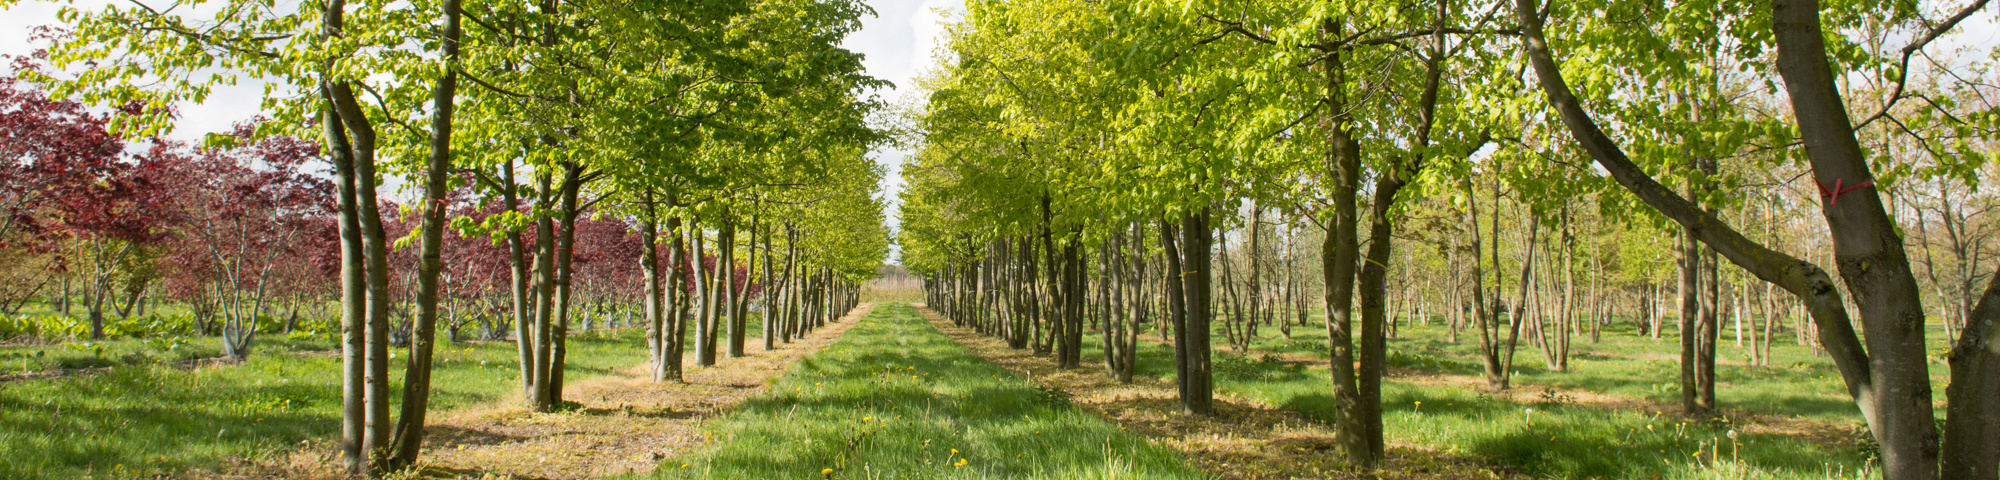 Wide range of characteristic trees and shrubs